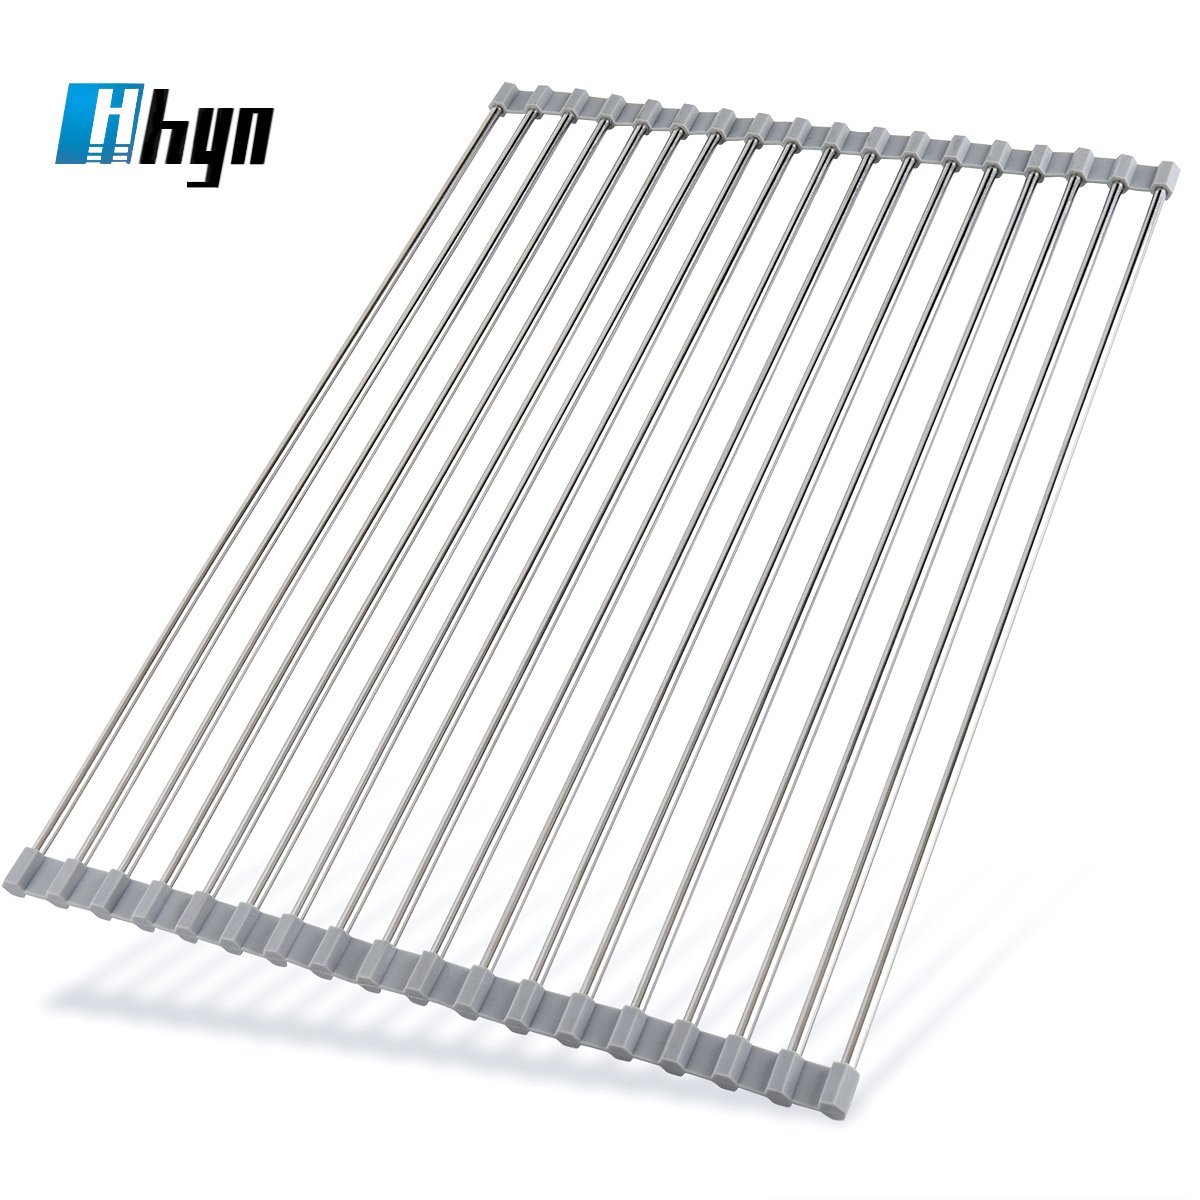 Roll Up Dish Drying Rack by Hhyn - 20.5''(L) x 14''(W) Stainless Steel and Silicone Dish Drying Mat Over the Sink Foldable Drain Rack Multipurpose Dish Drainer Extra Large, Gray by Hhyn